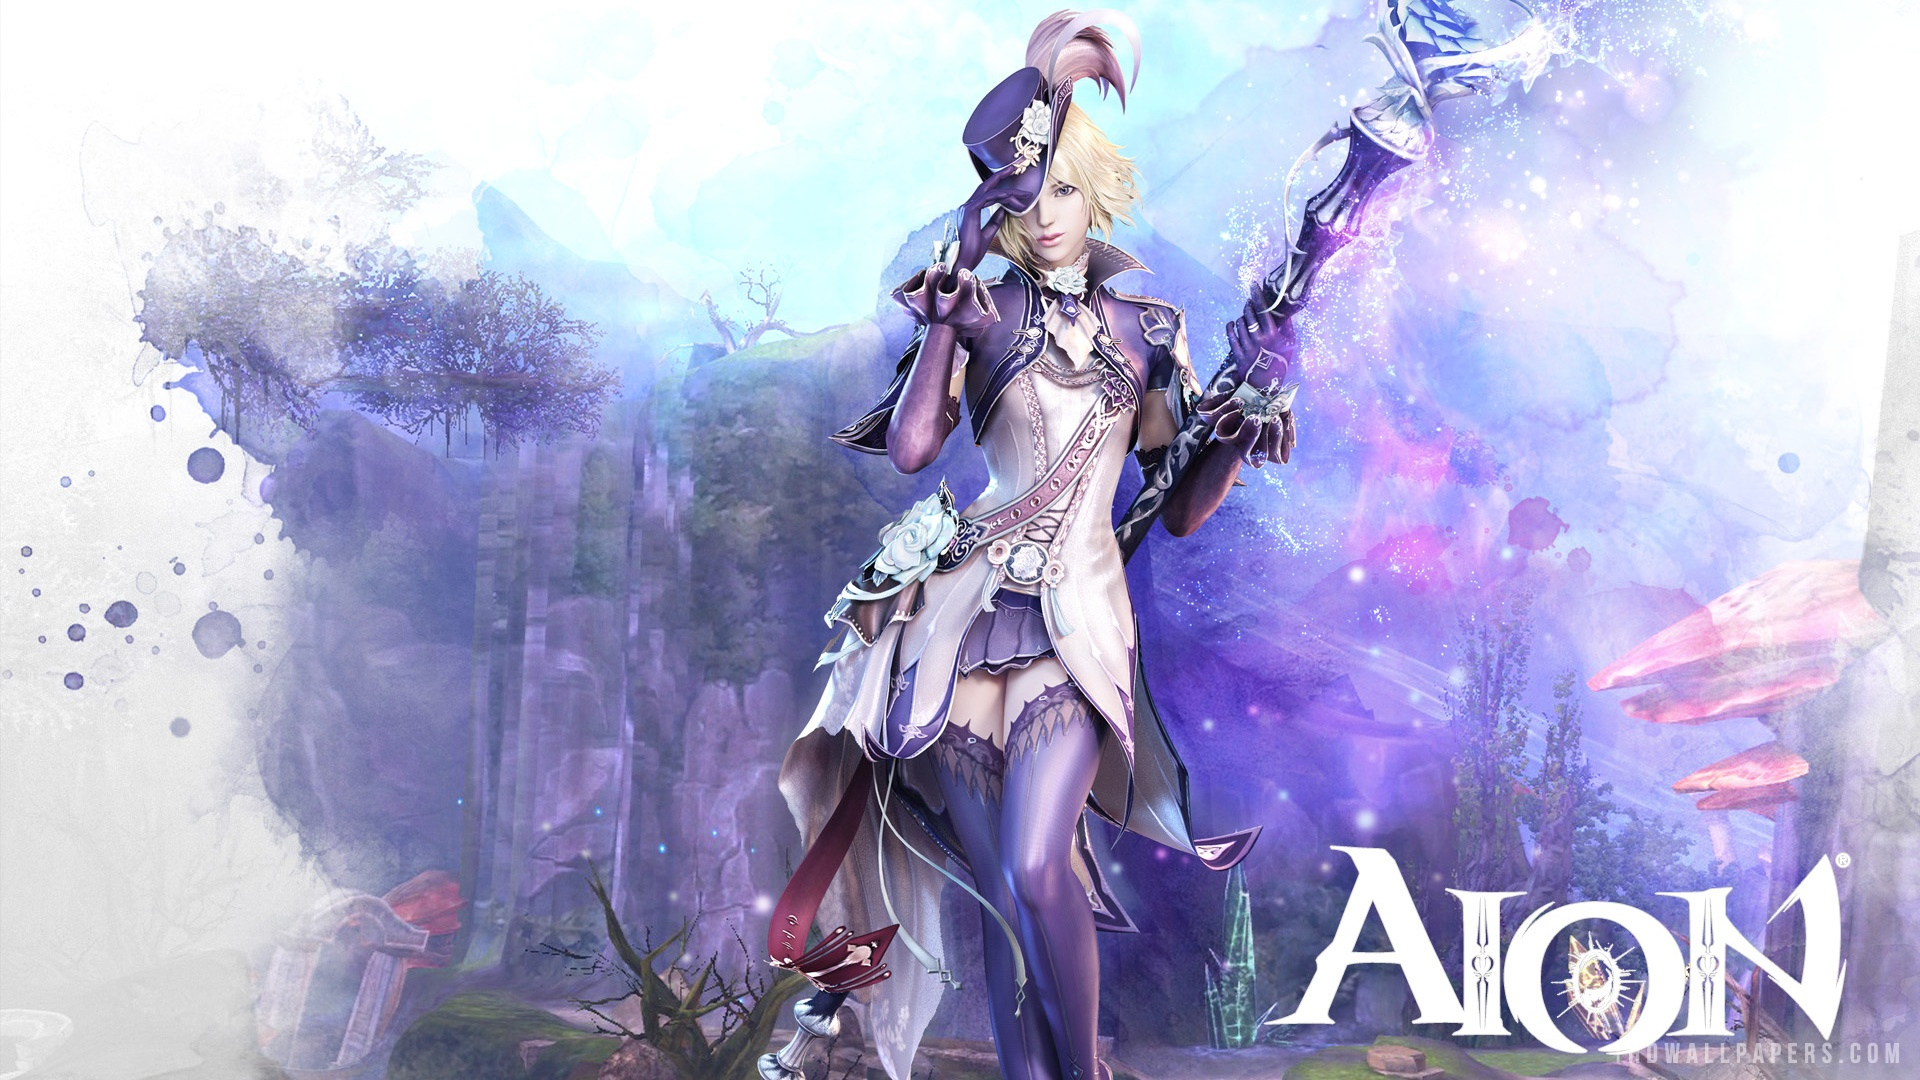 Aion Elyos Chanter 2 HD Wallpaper   iHD Wallpapers 1920x1080